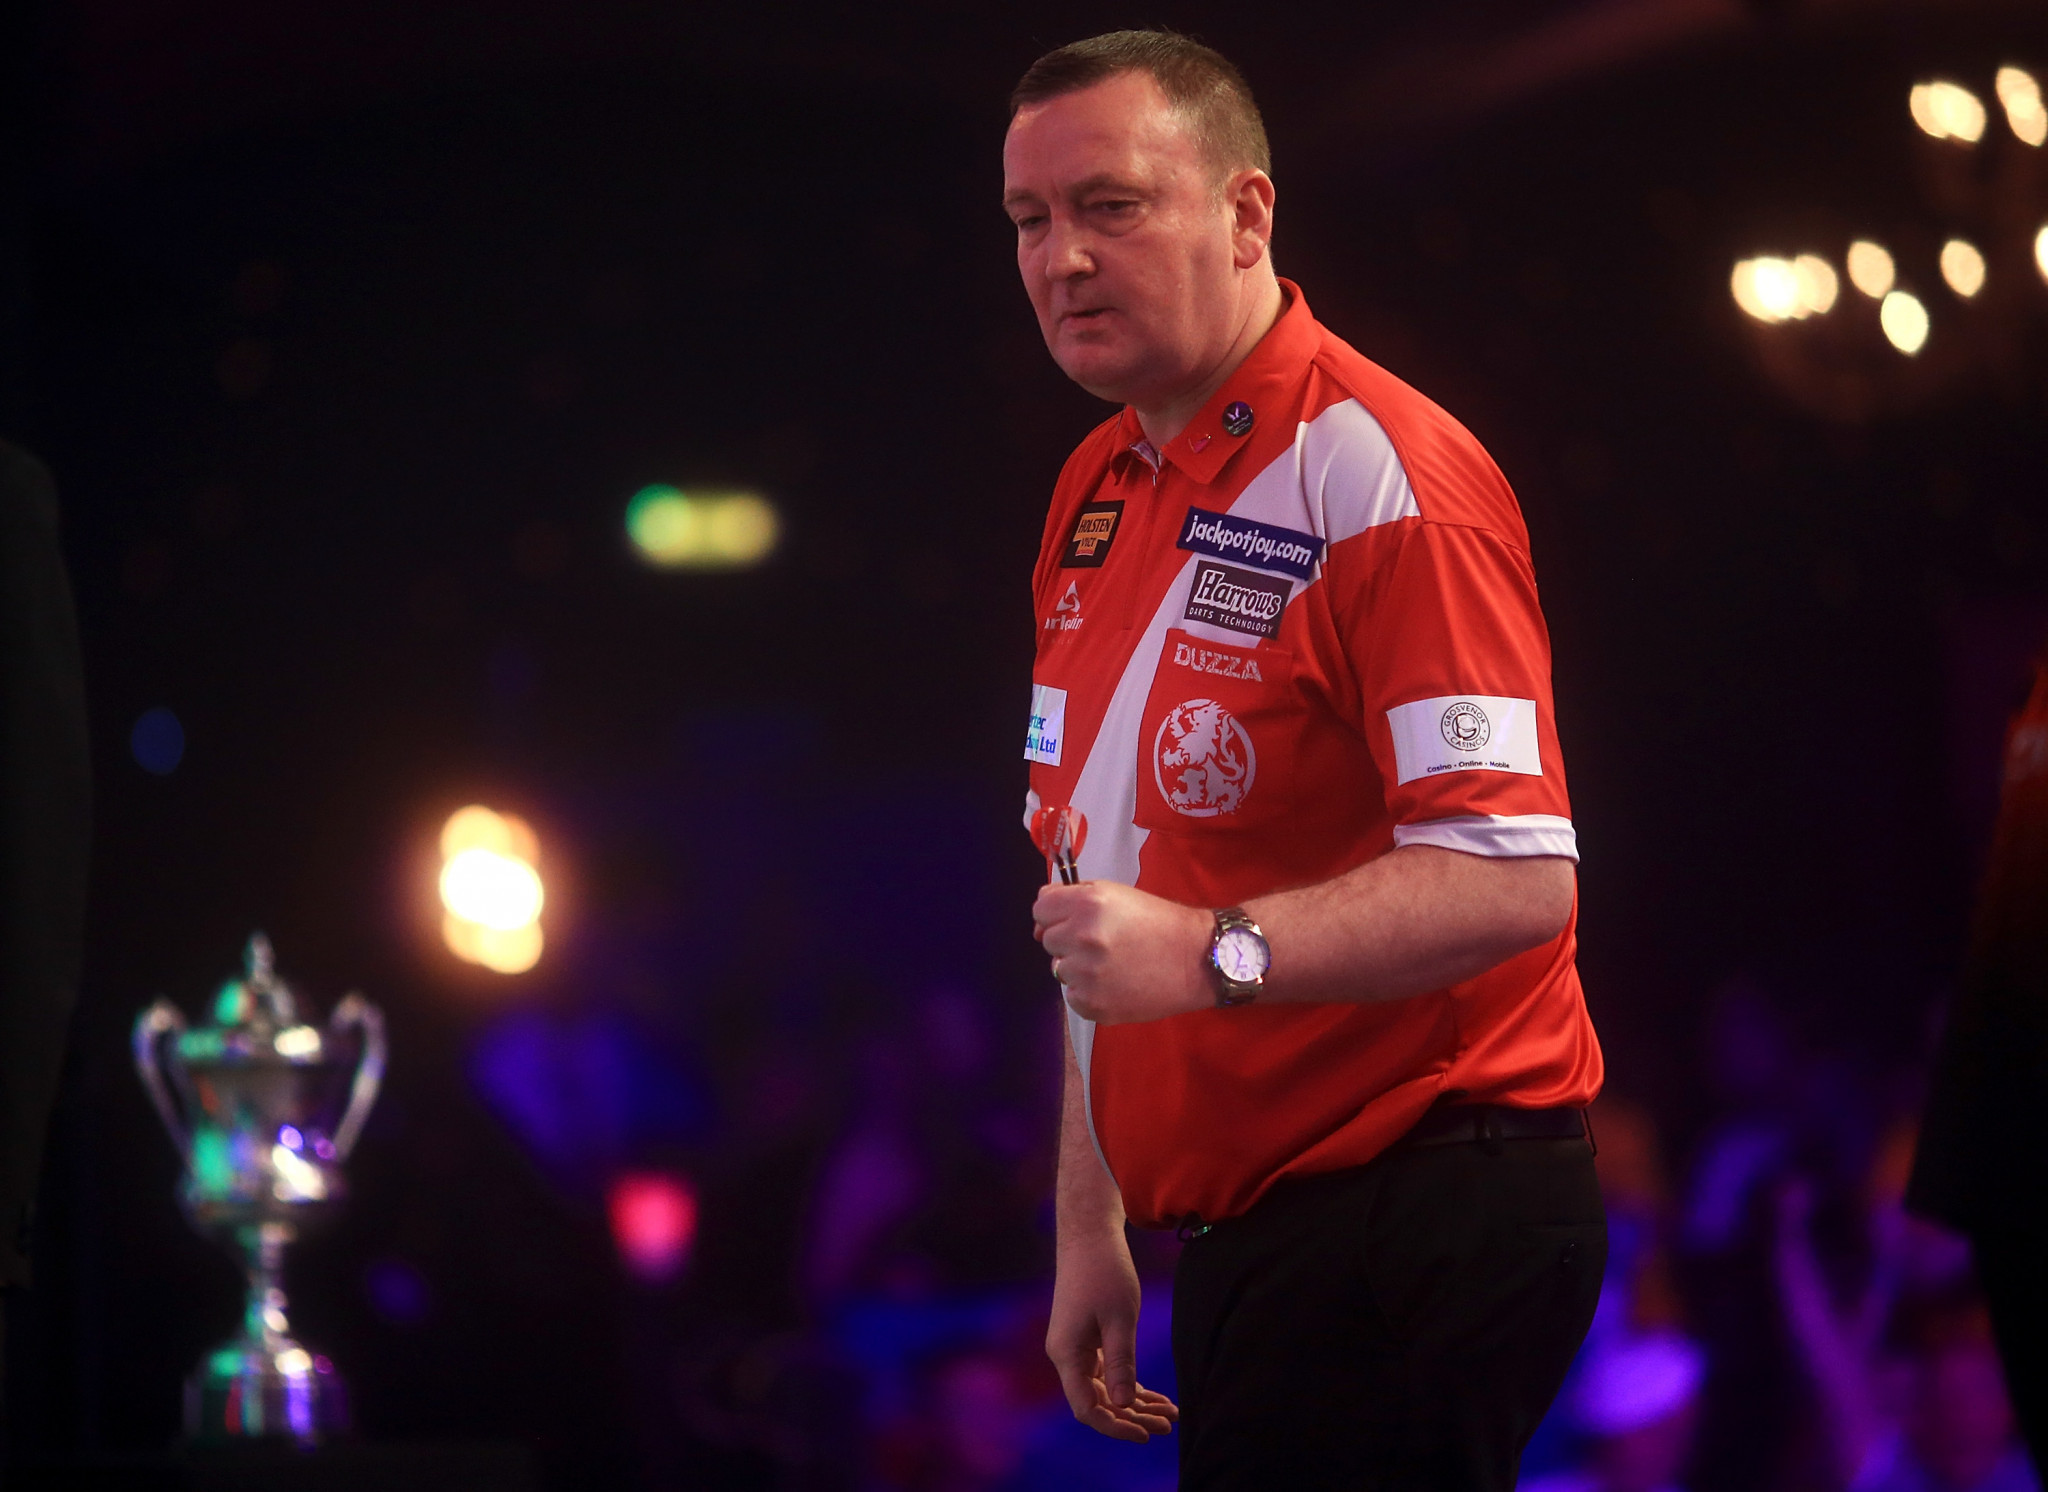 Glen Durrant began his title defence with a routine victory ©Getty Images